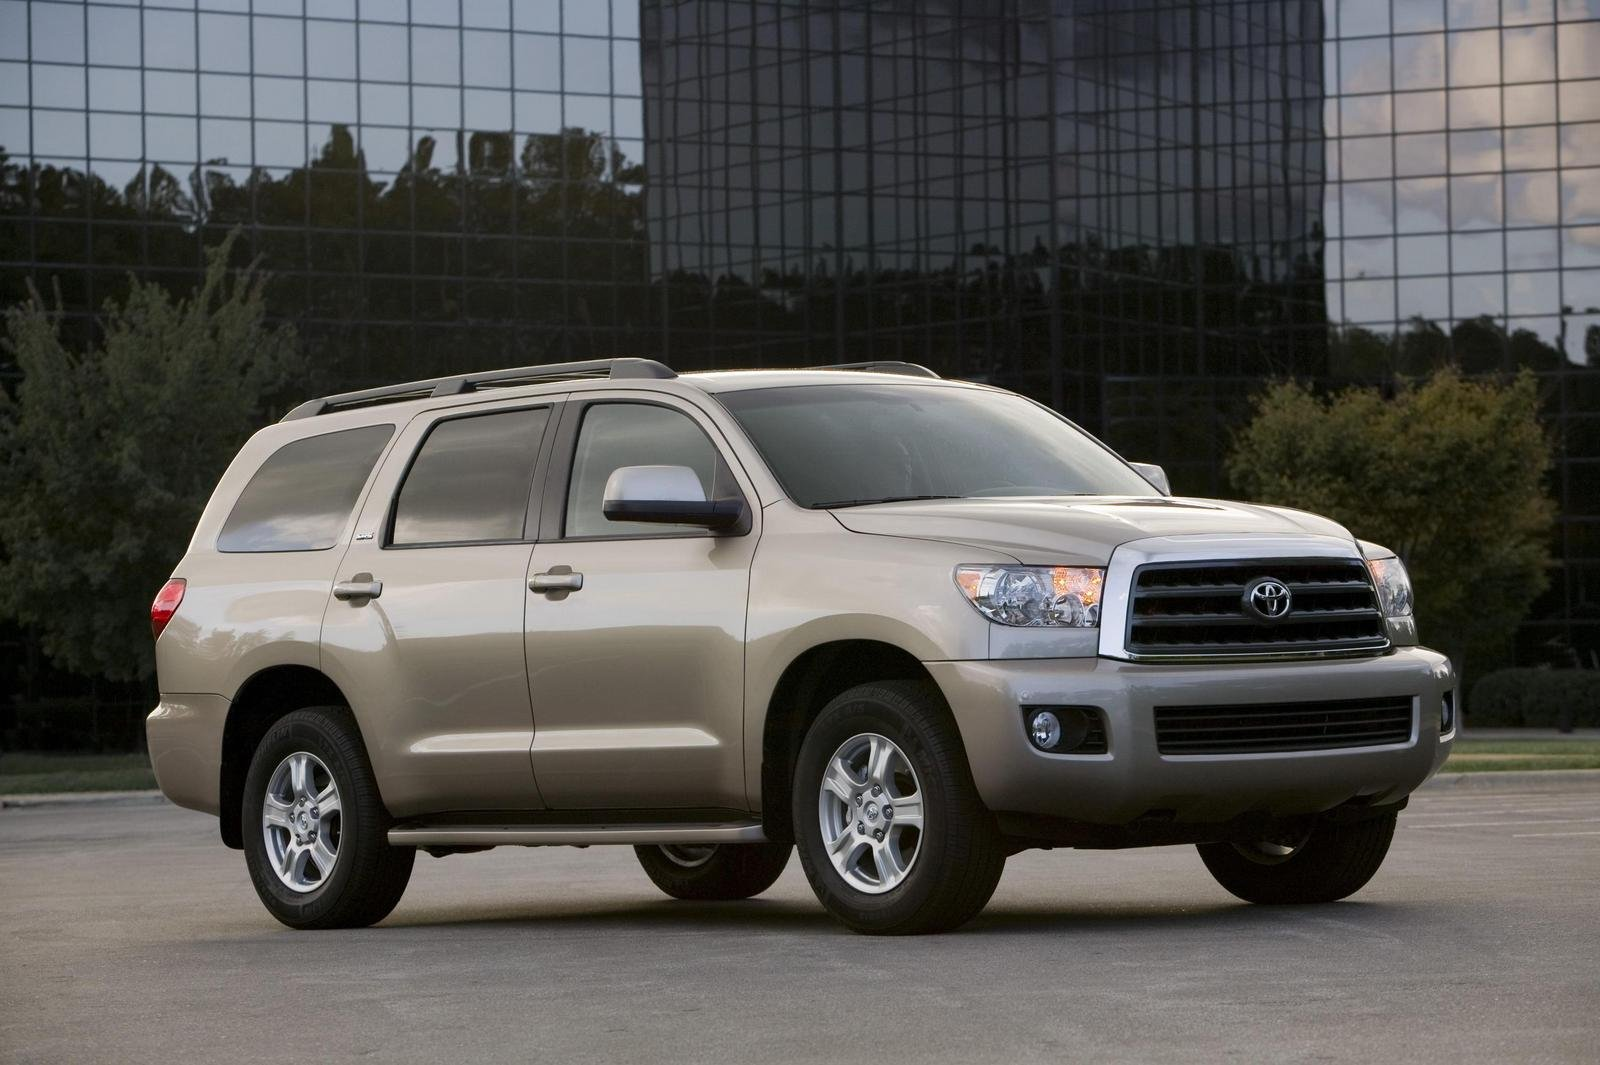 2008 toyota sequoia picture 213887 car review top speed. Black Bedroom Furniture Sets. Home Design Ideas